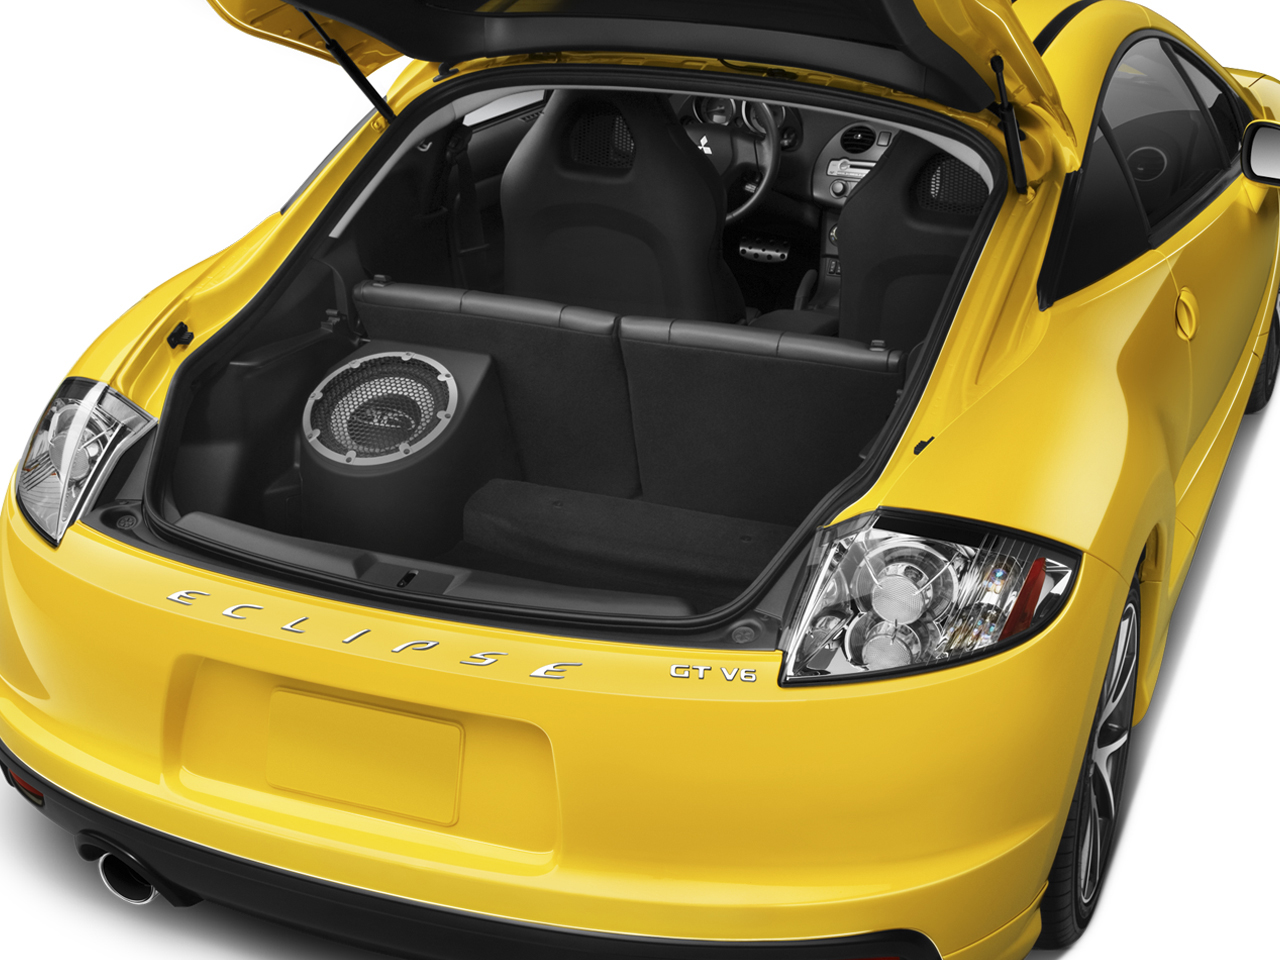 2009 mitsubishi eclipse - latest news, reviews, and auto show